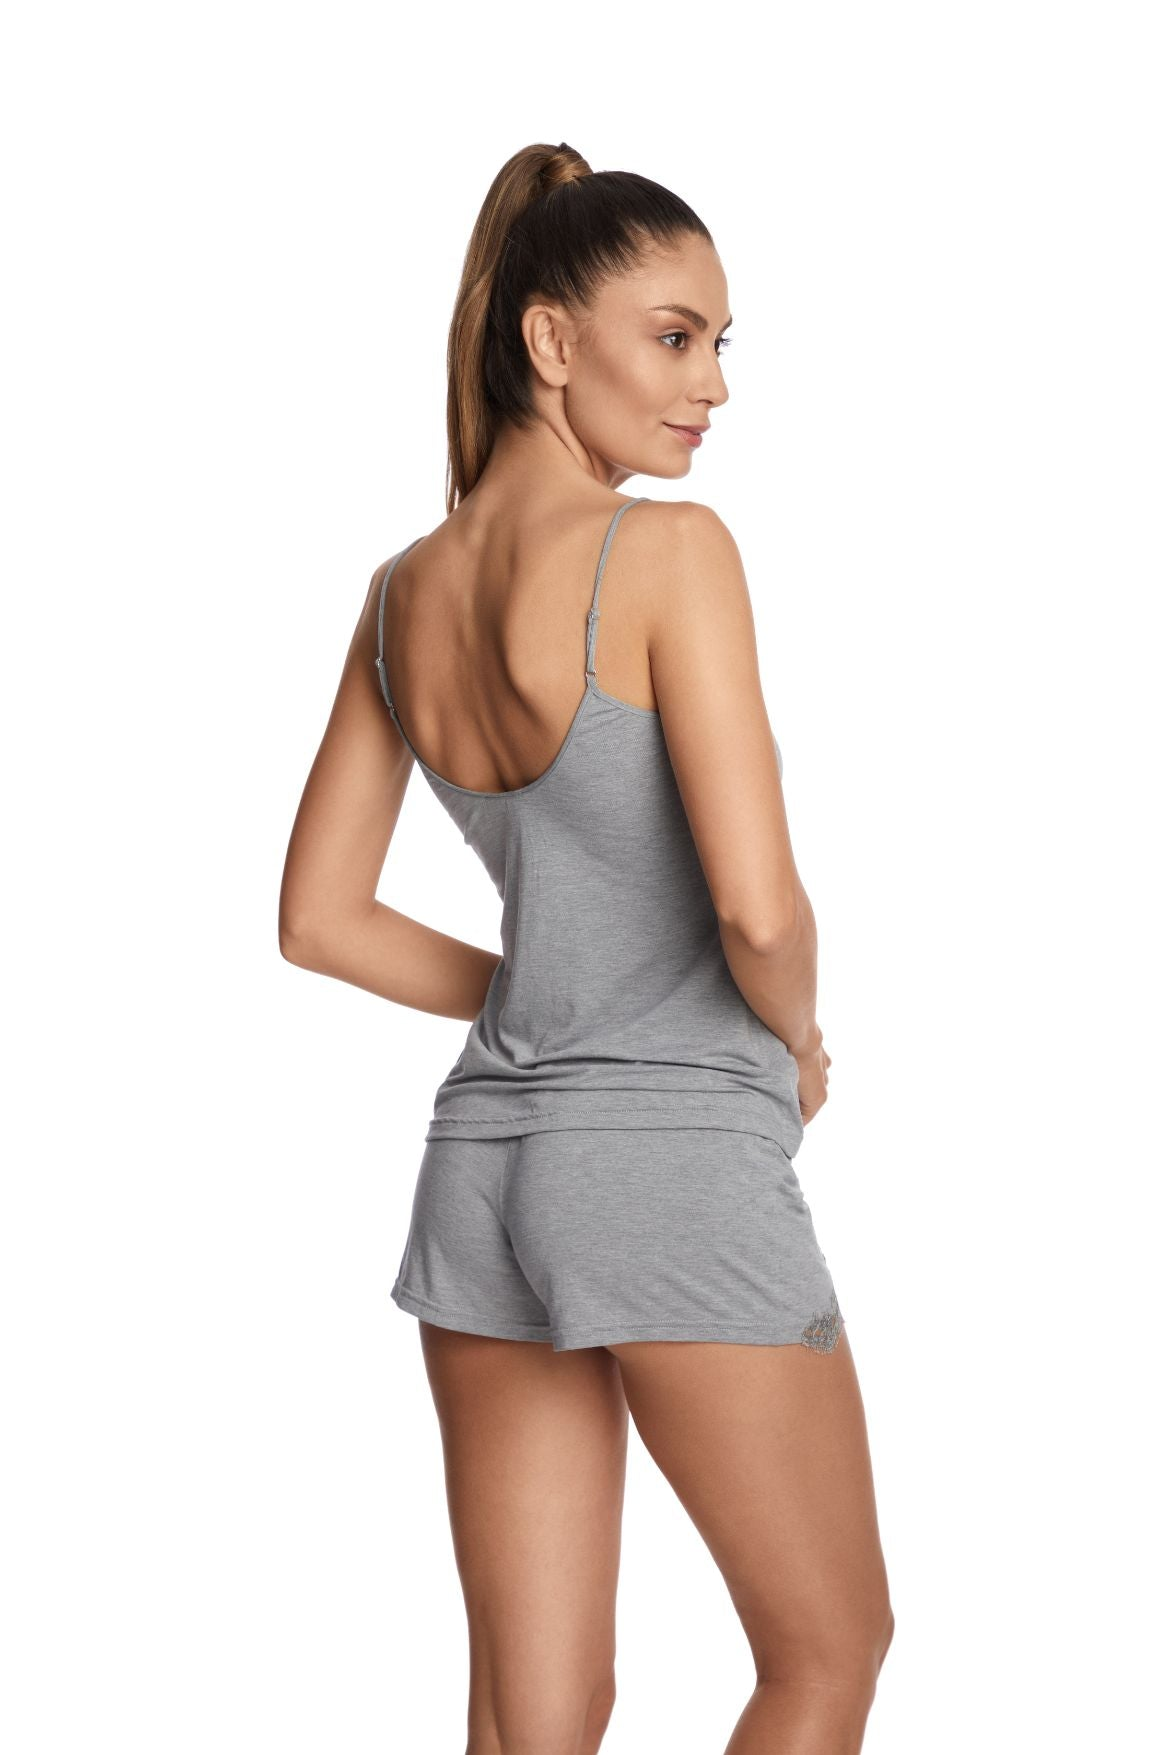 Heavenly Freshness Shorts in Glacier Grey